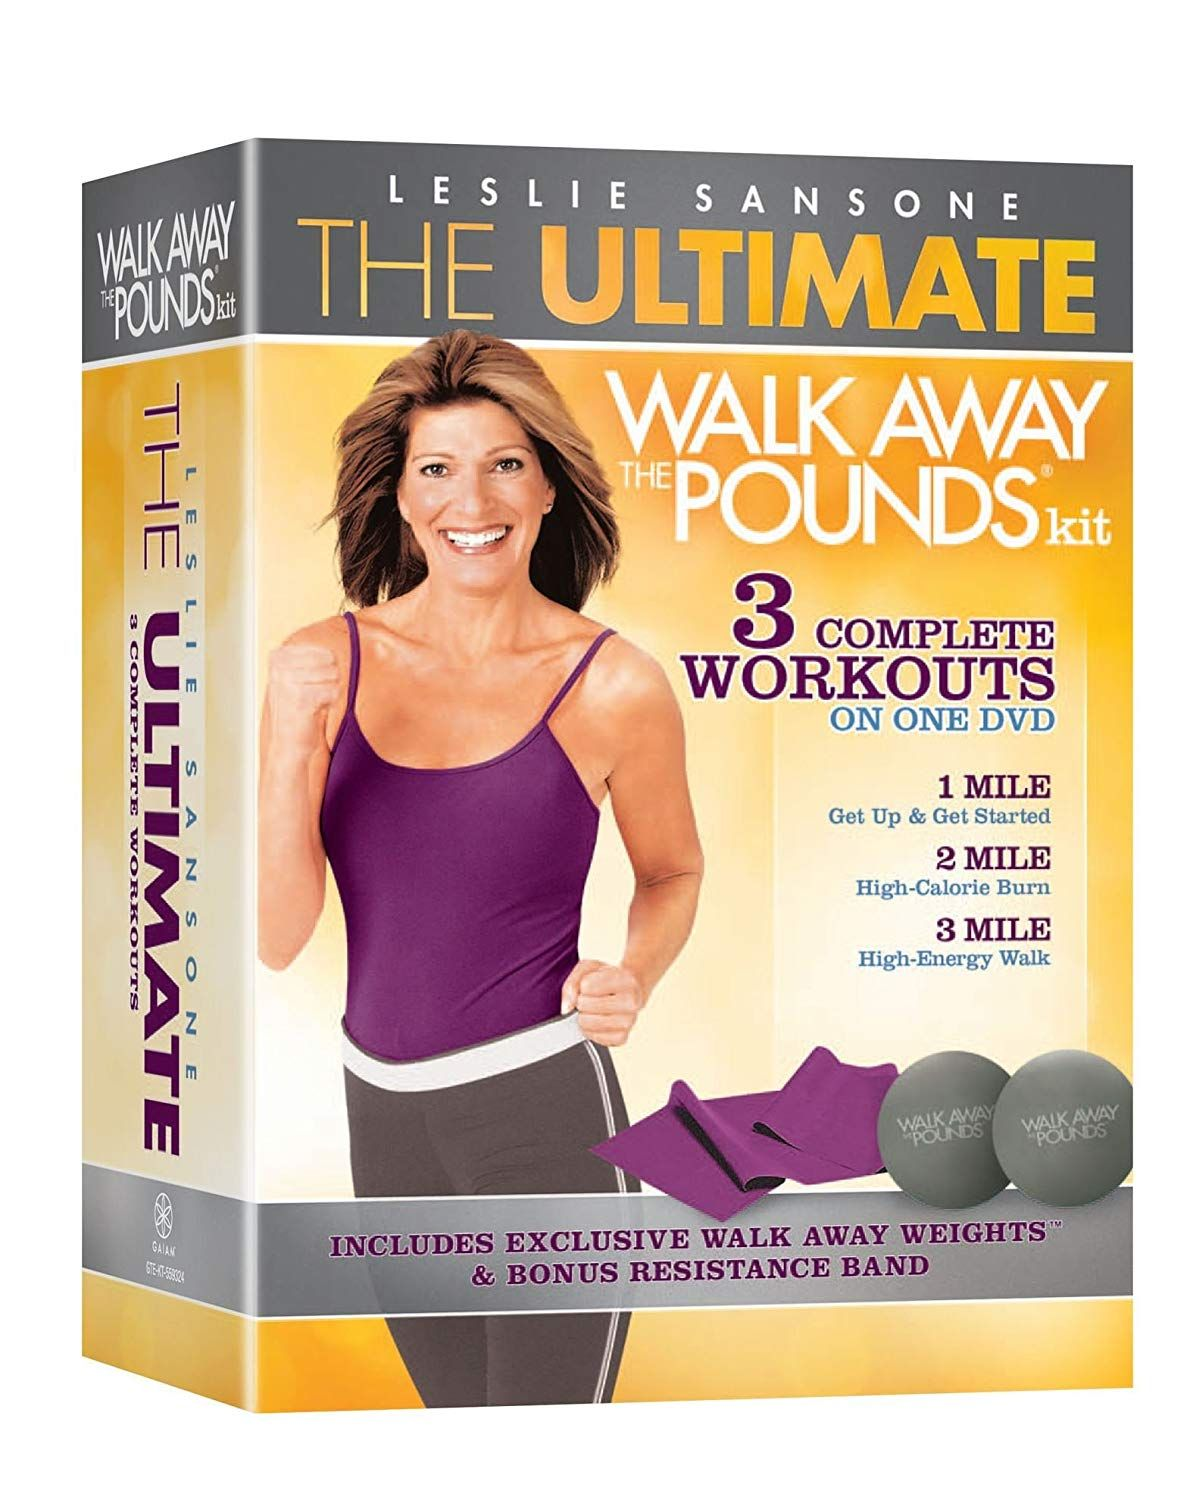 The Ultimate Leslie Sansone Walk Away The Pounds Kit